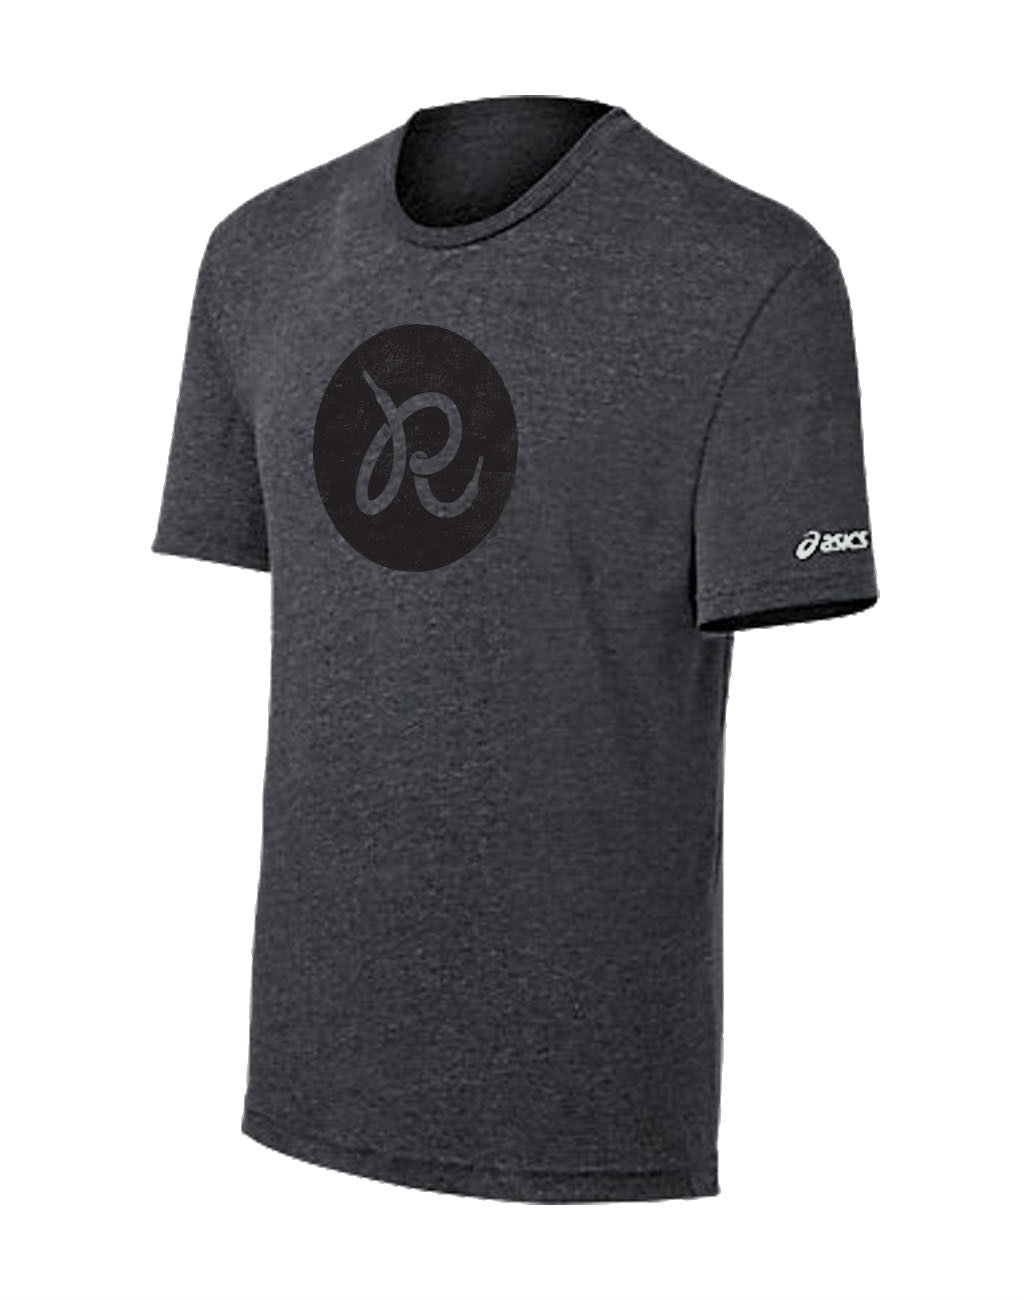 Runkeeper Signature Tee (Men's)Charcoal Heather_master_image